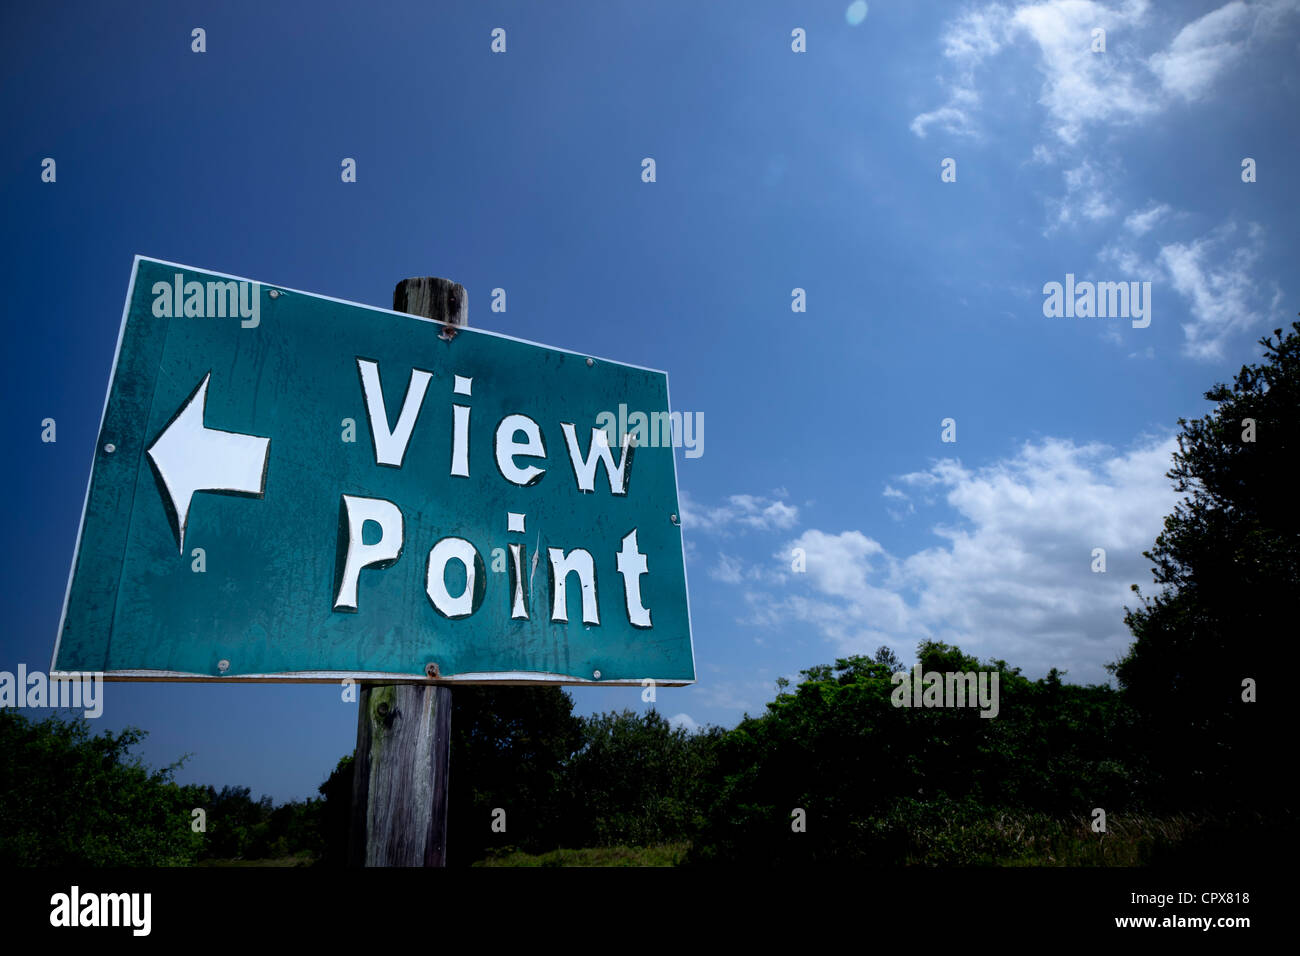 Closeup of an information sign that reads 'View Point', with a cloudy sky in the background - Stock Image